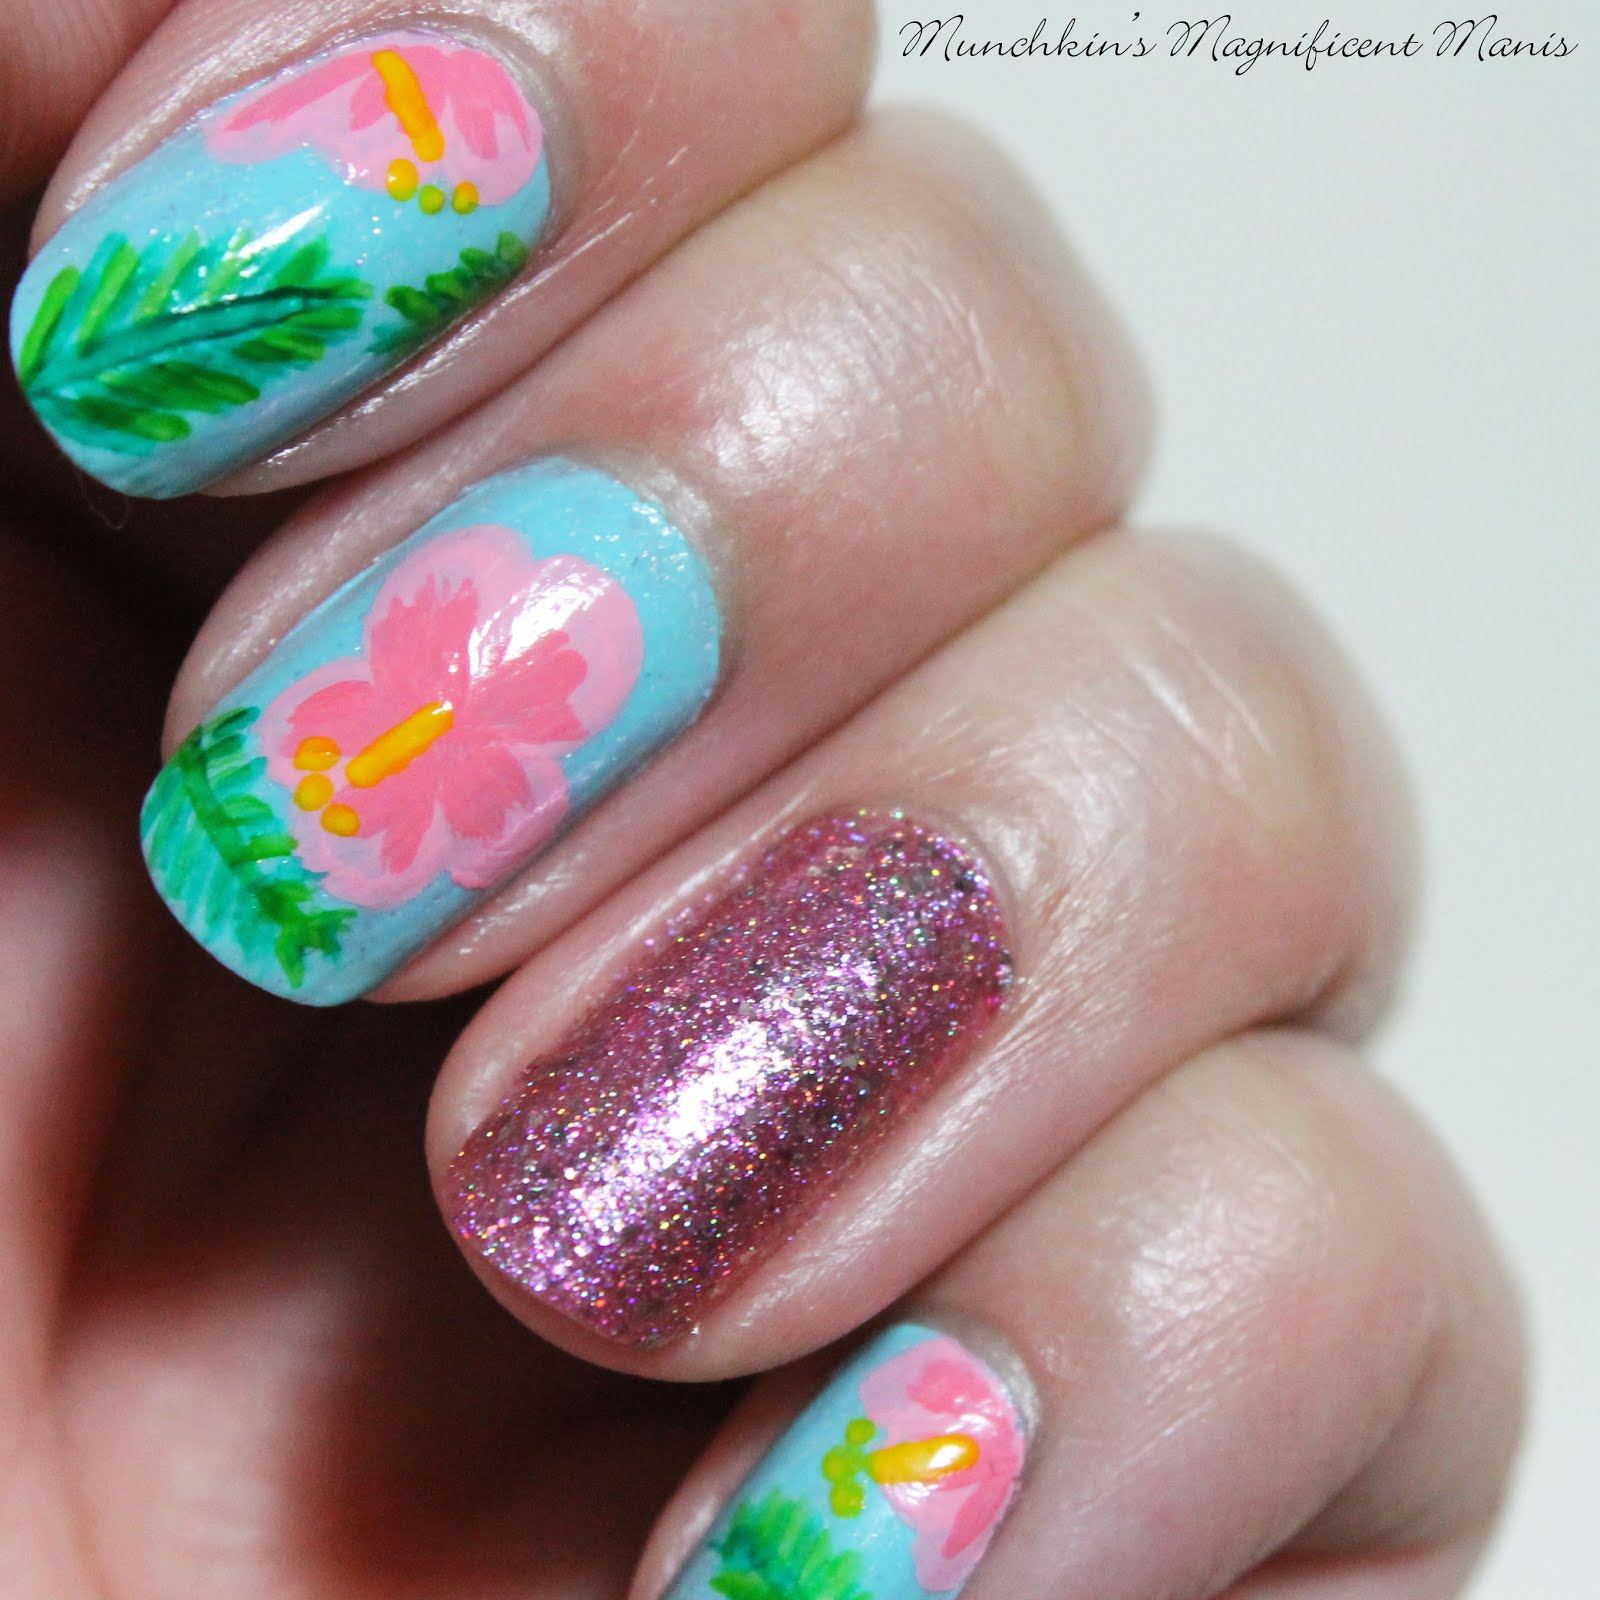 Munchkins Magnificent Manis: Aloha Flowers